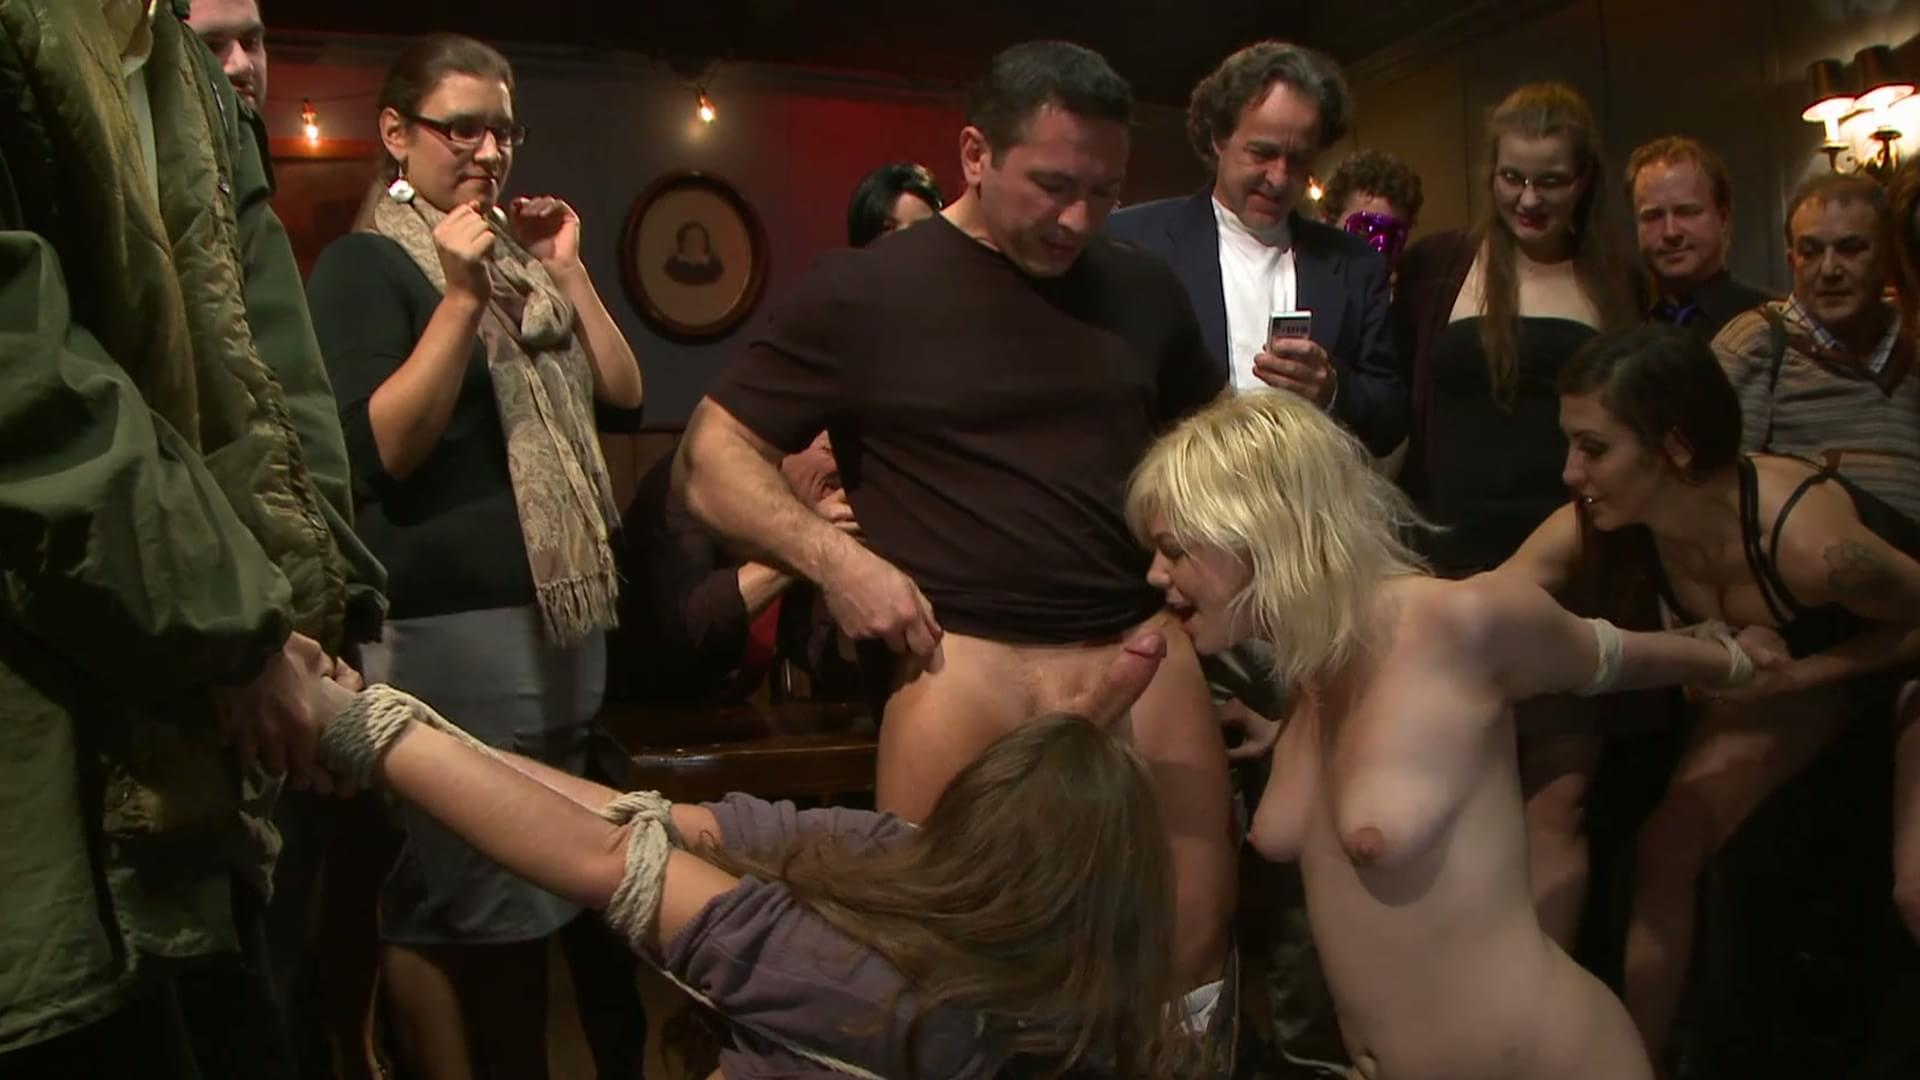 blowjob party bdsm party